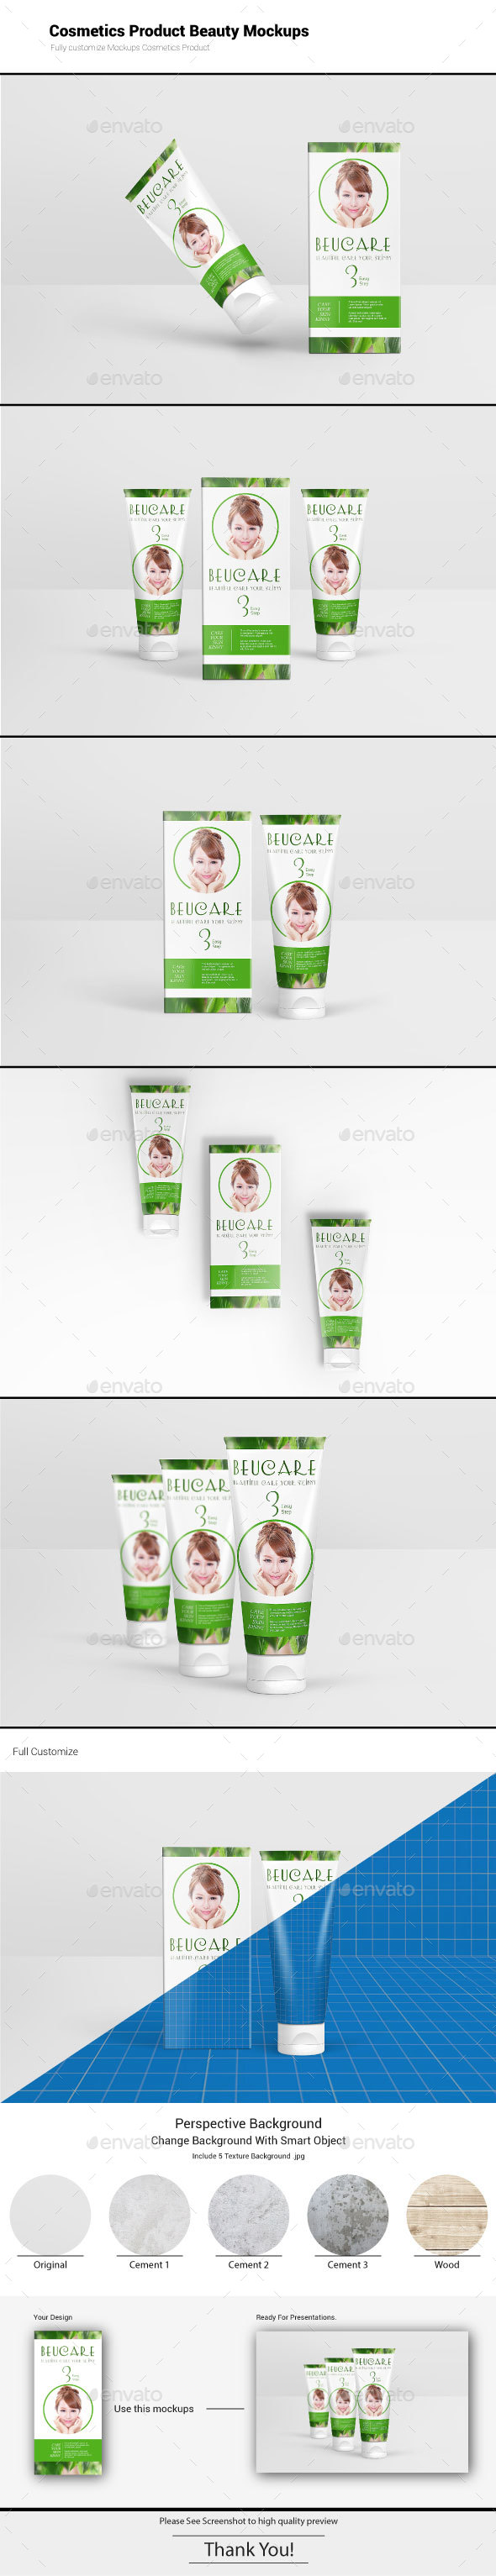 Cosmetics Product Beauty Mockups - Beauty Packaging